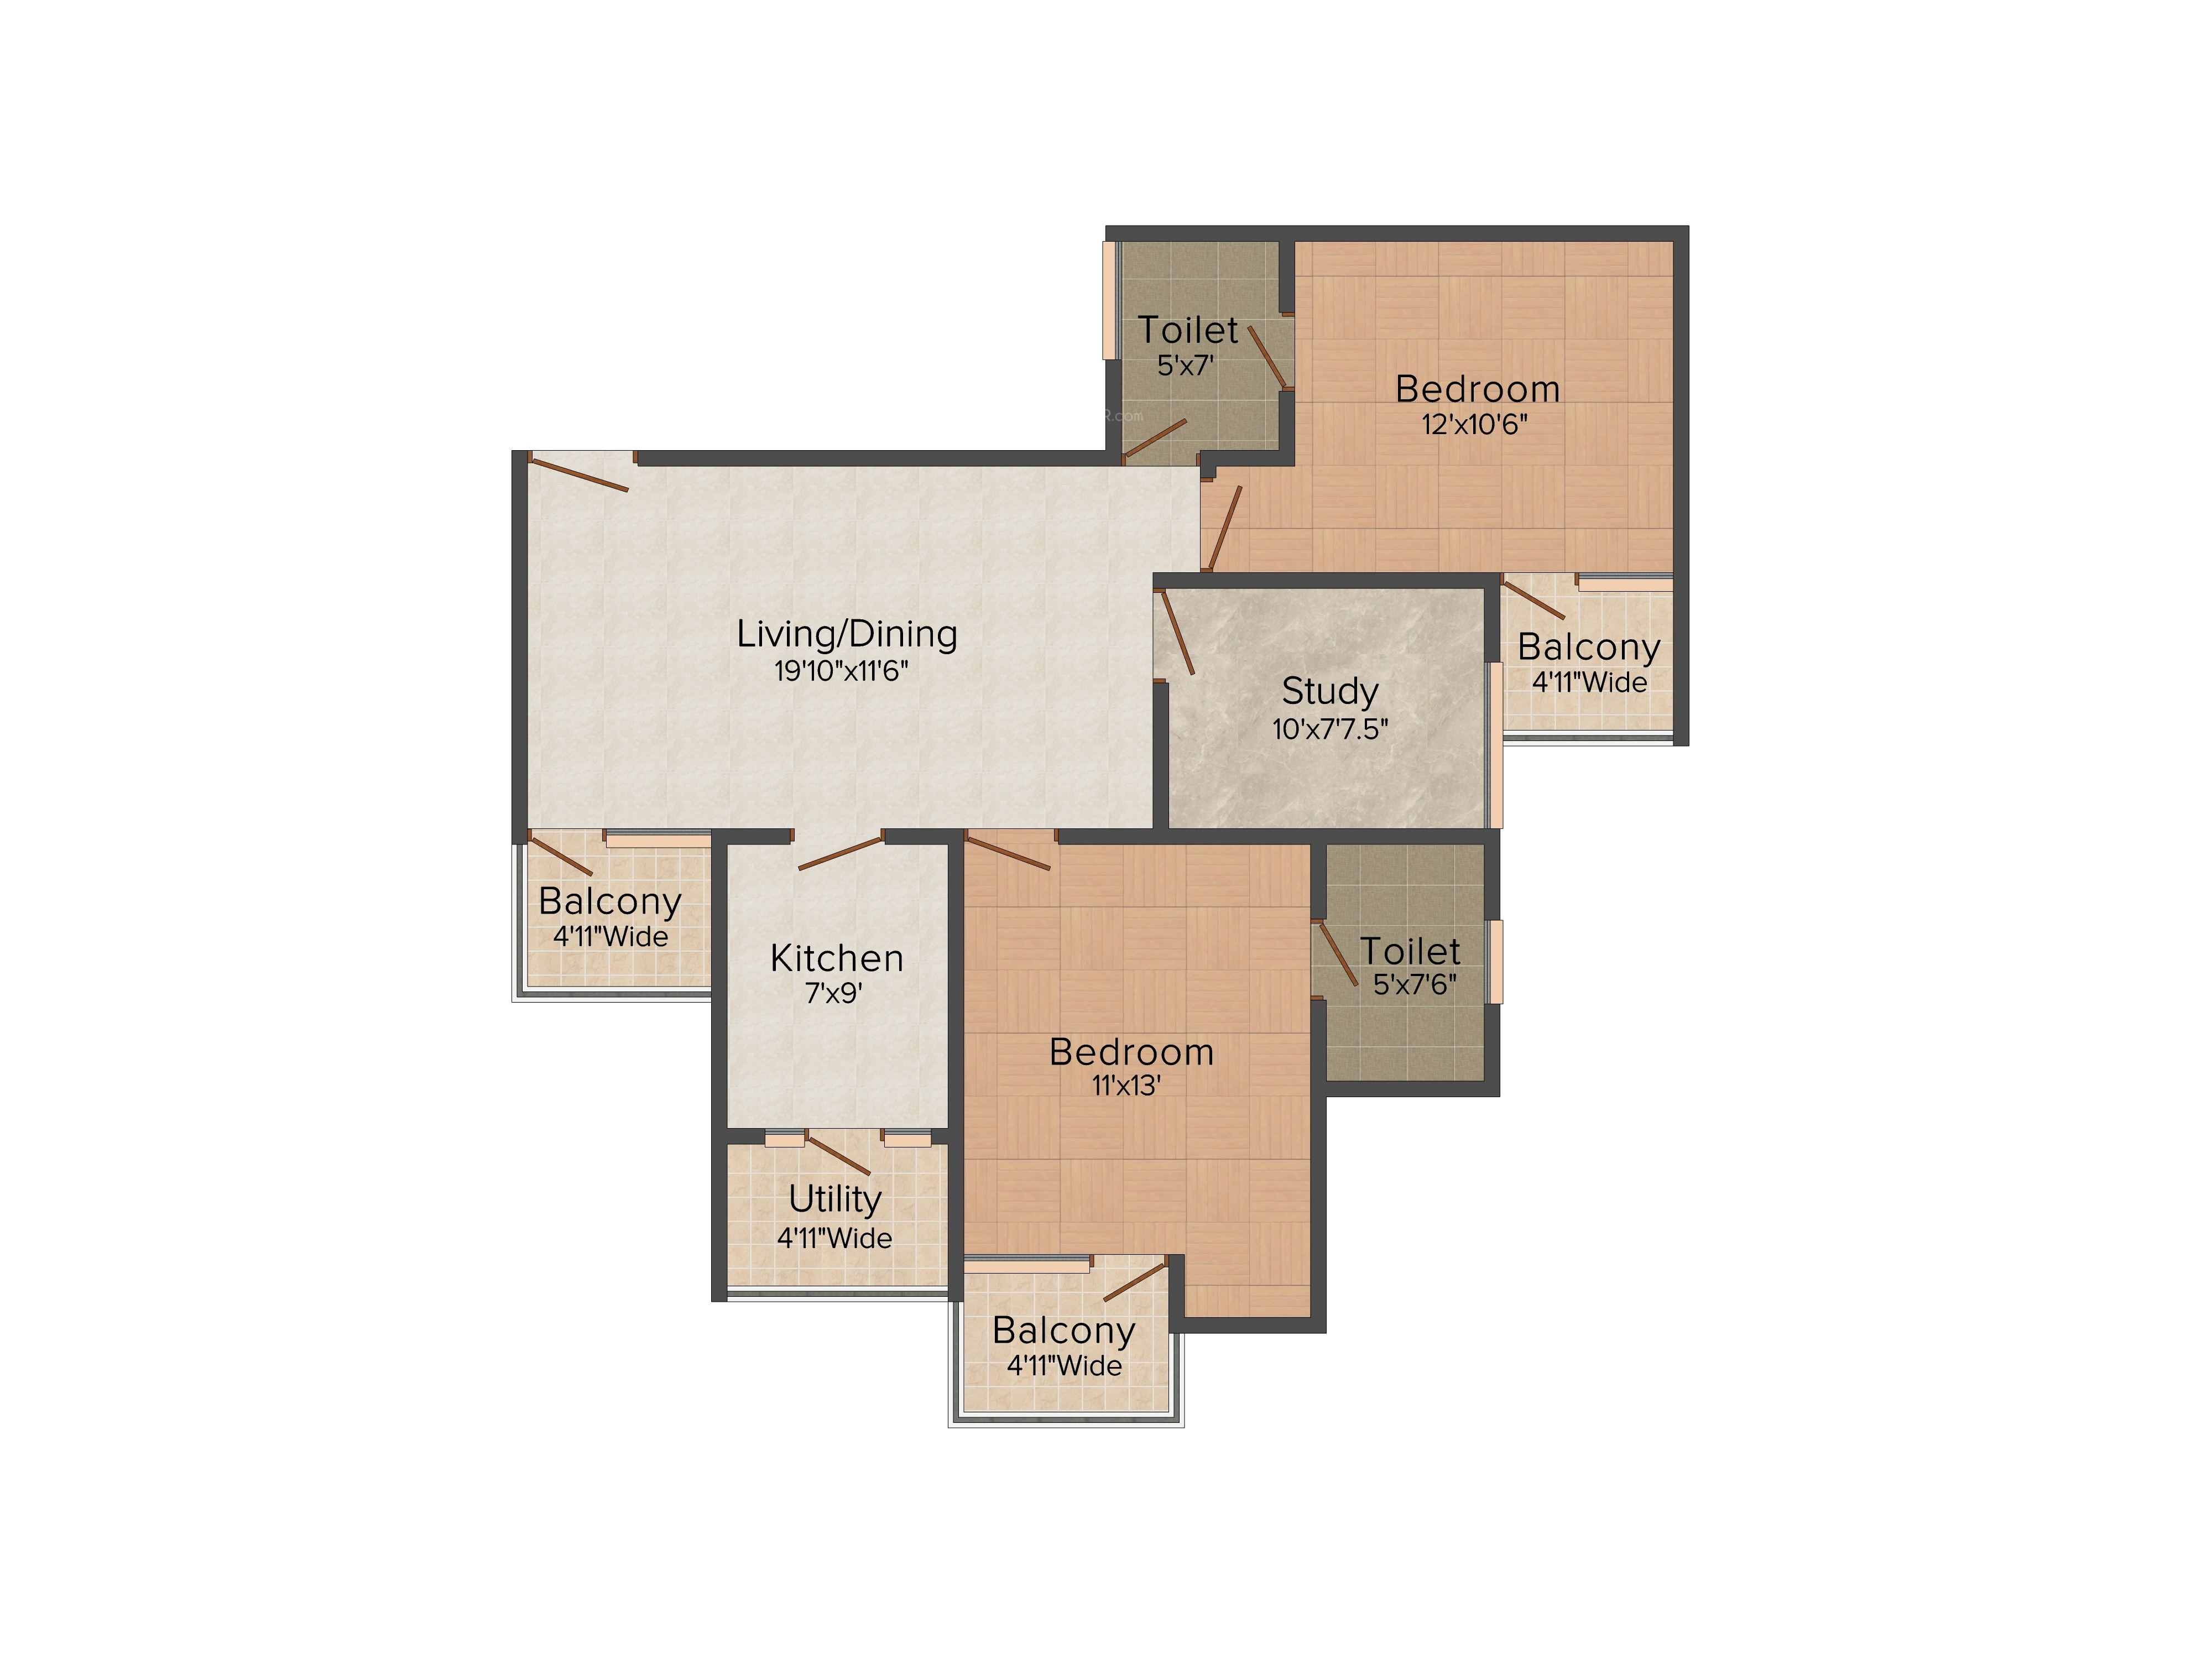 Amrapali Verona Heights In Techzone 4 Greater Noida Price Location Map Floor Plan Reviews Proptiger Com